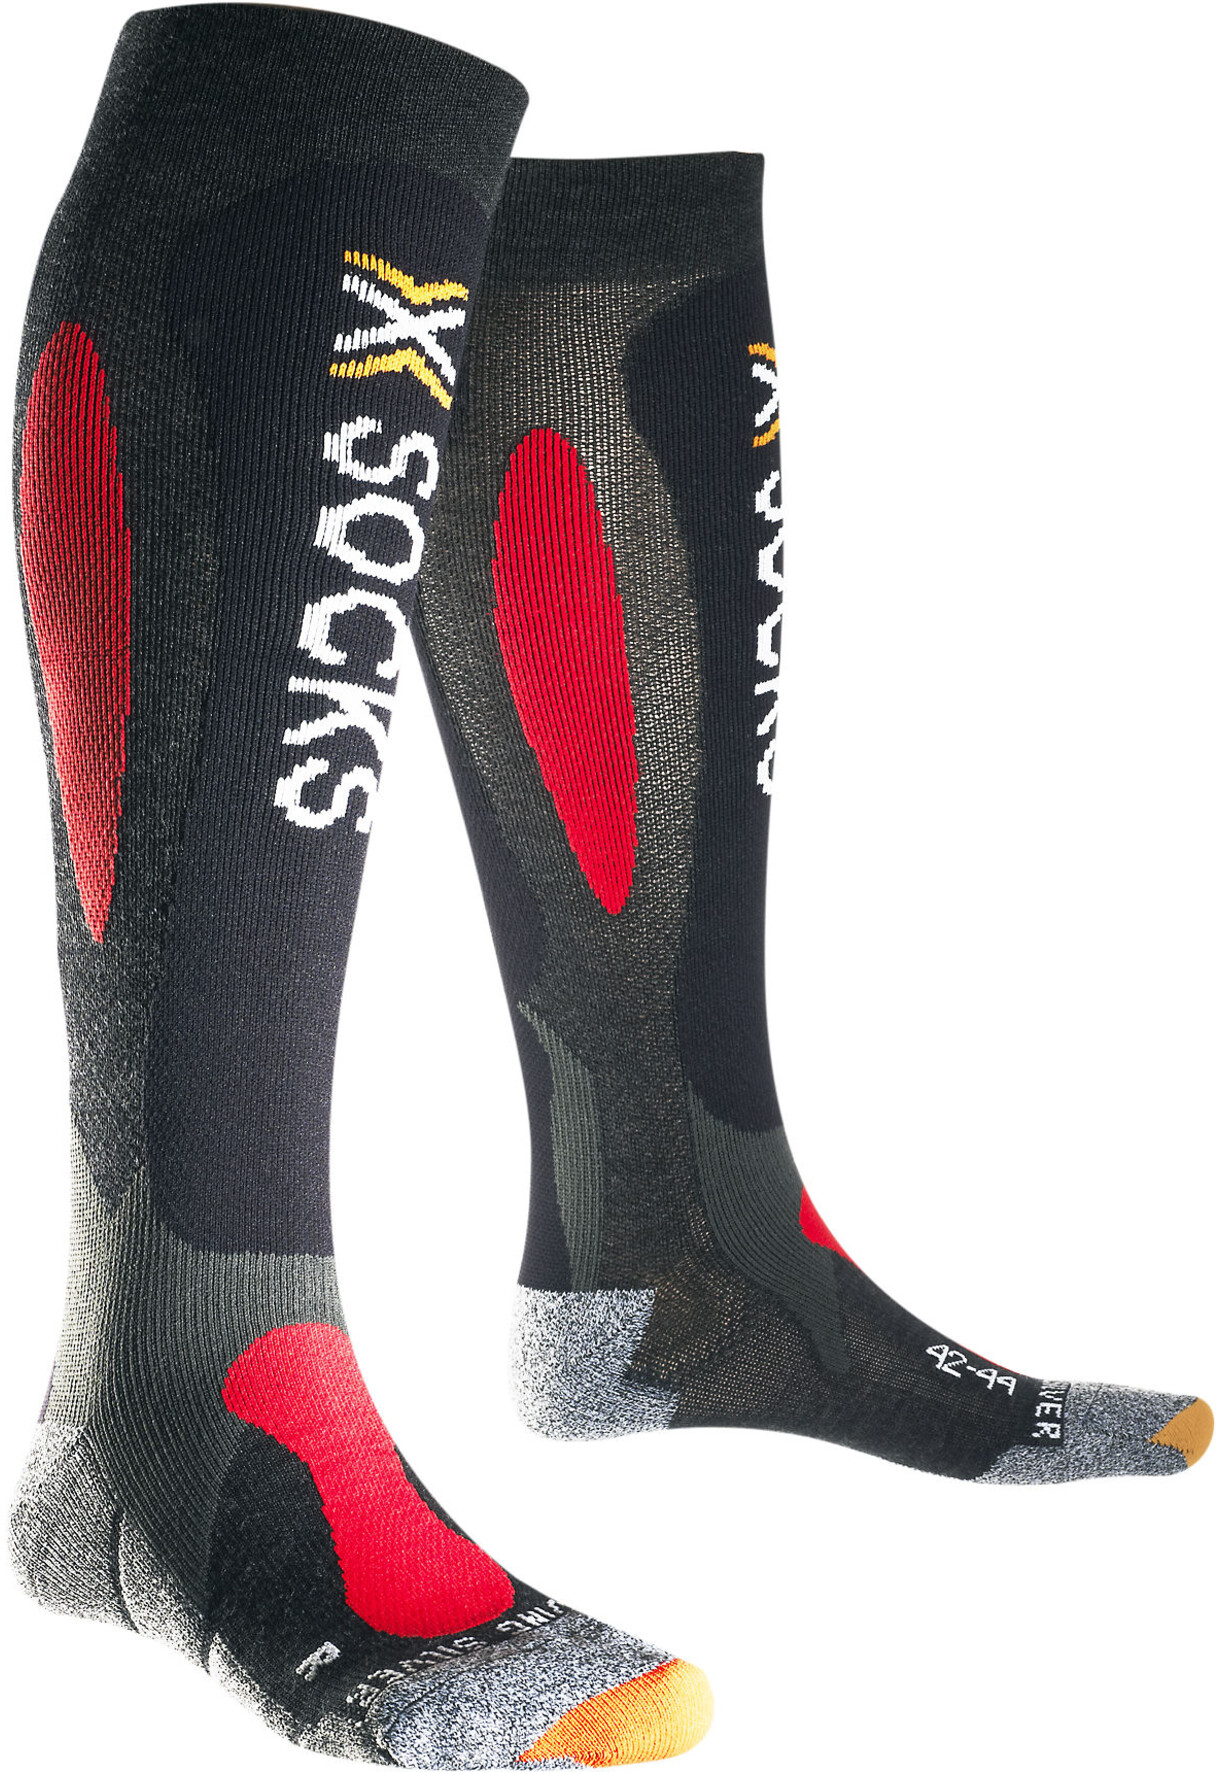 X bionic ski carving silver socks anthracite red campz